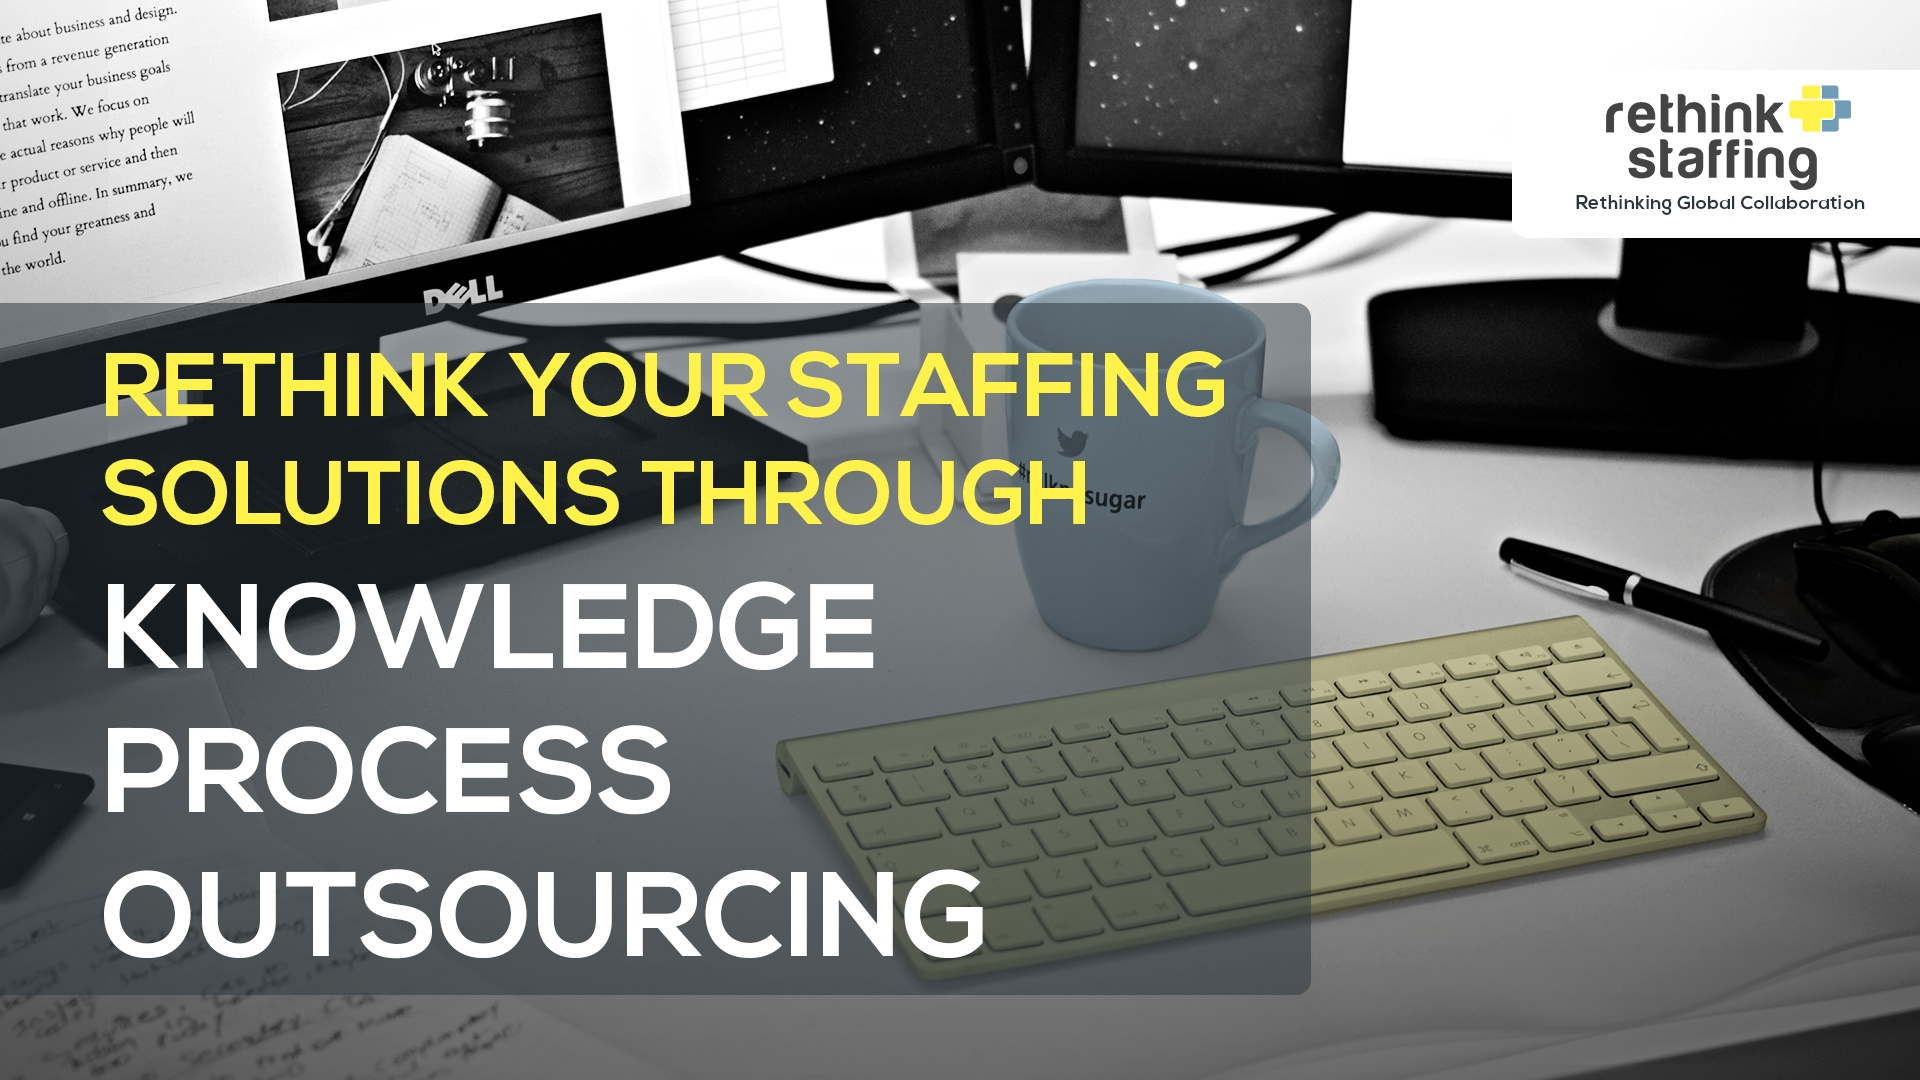 Rethink Your Staffing Solutions Through Knowledge Process Outsourcing